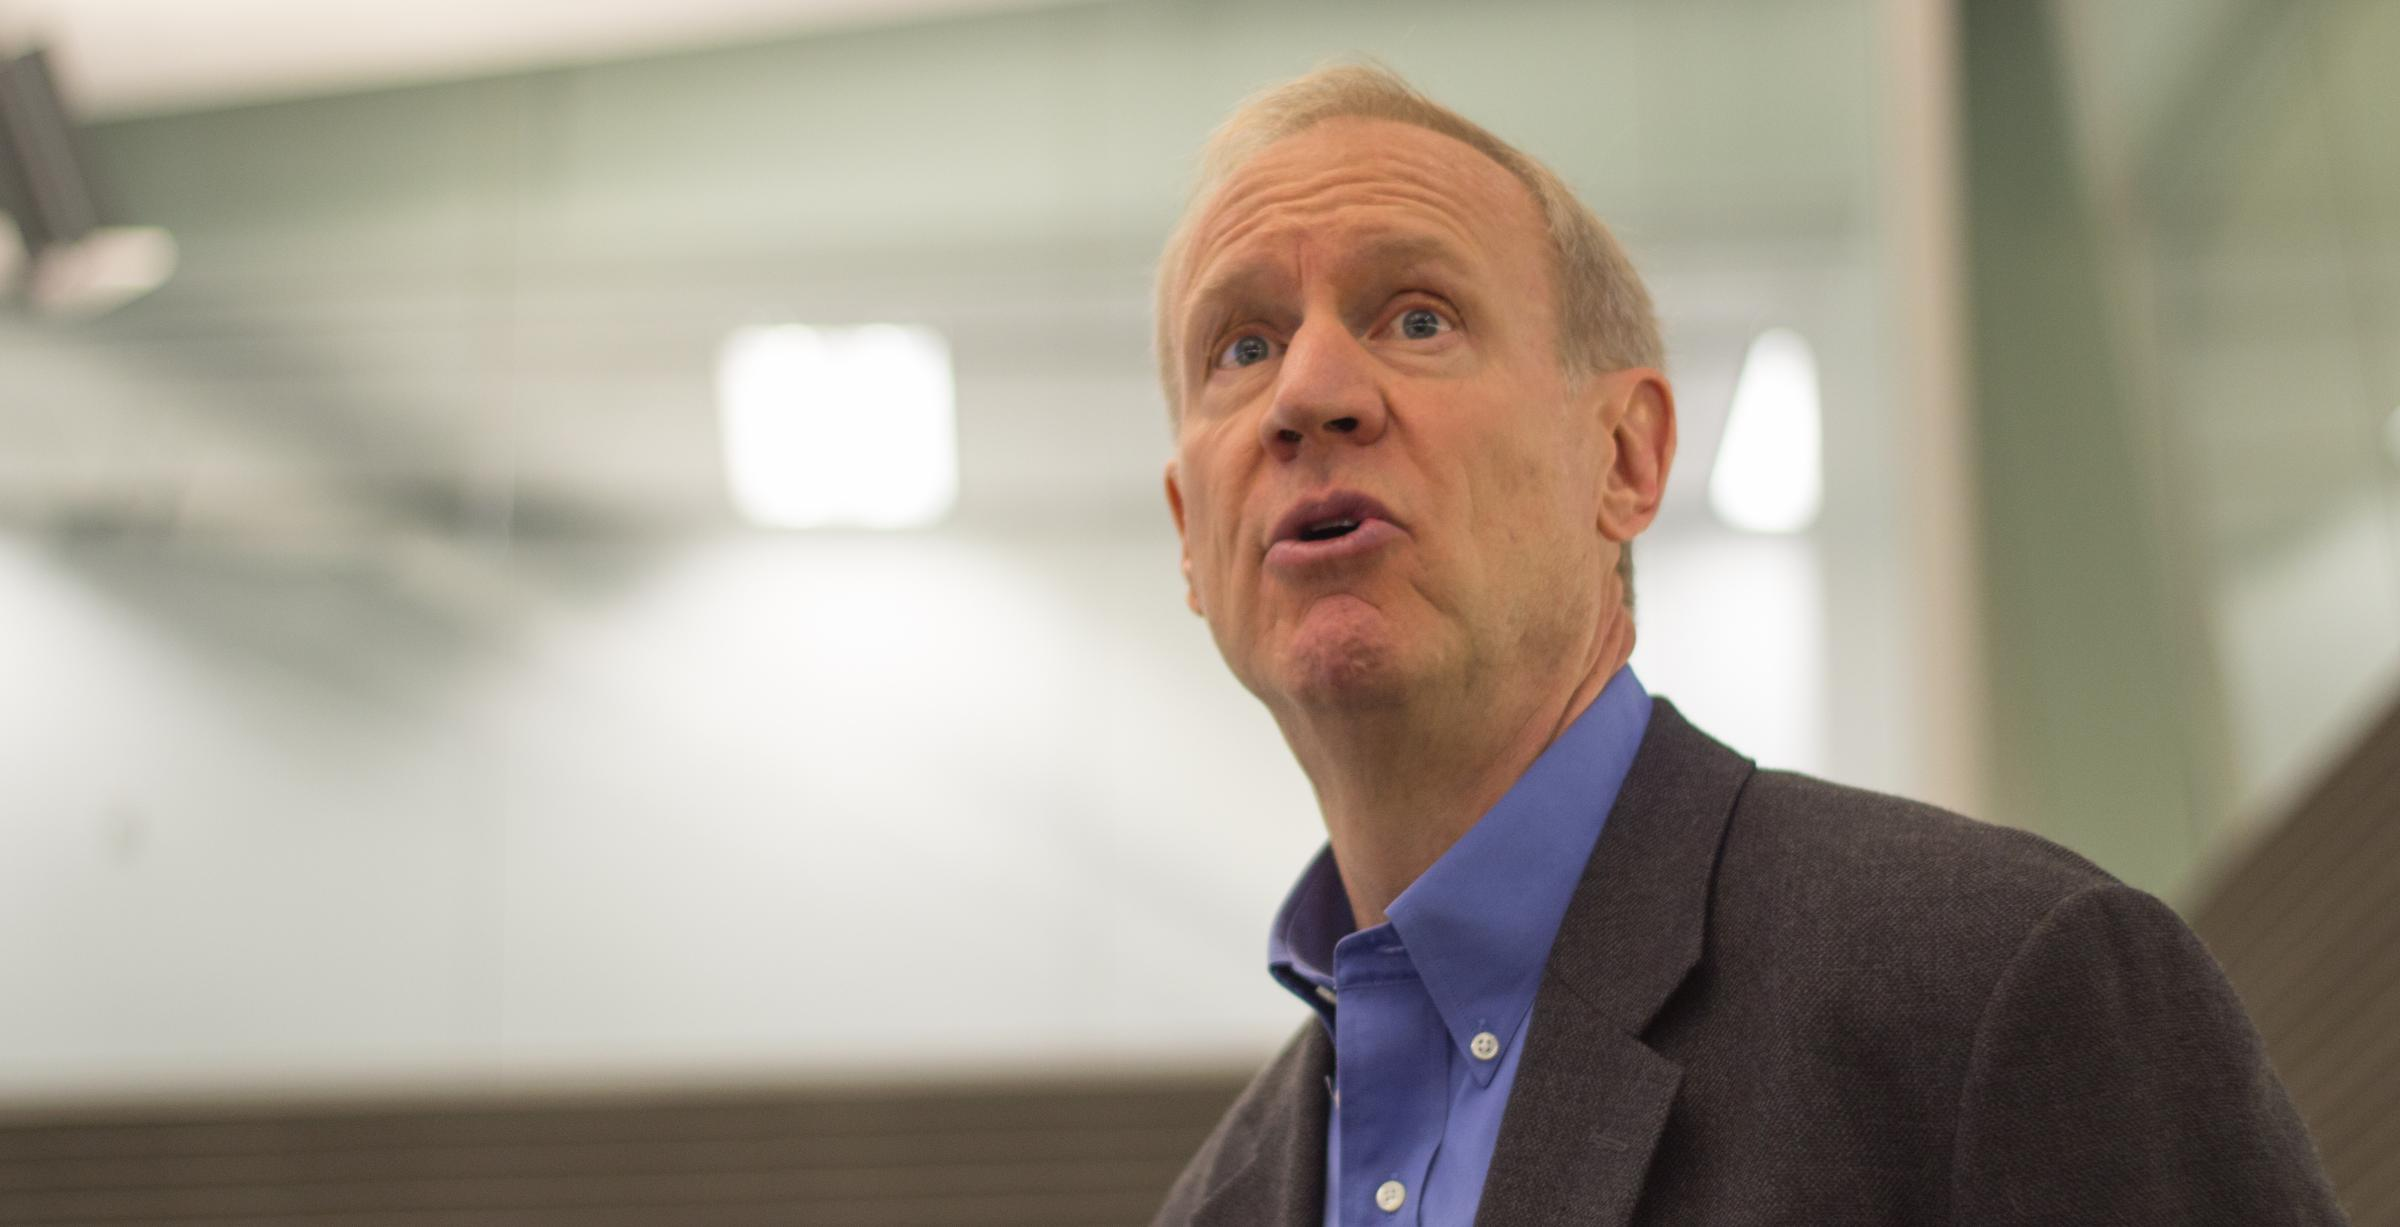 Some McHenry County education officials concerned about Gov. Bruce Rauner's pension plan